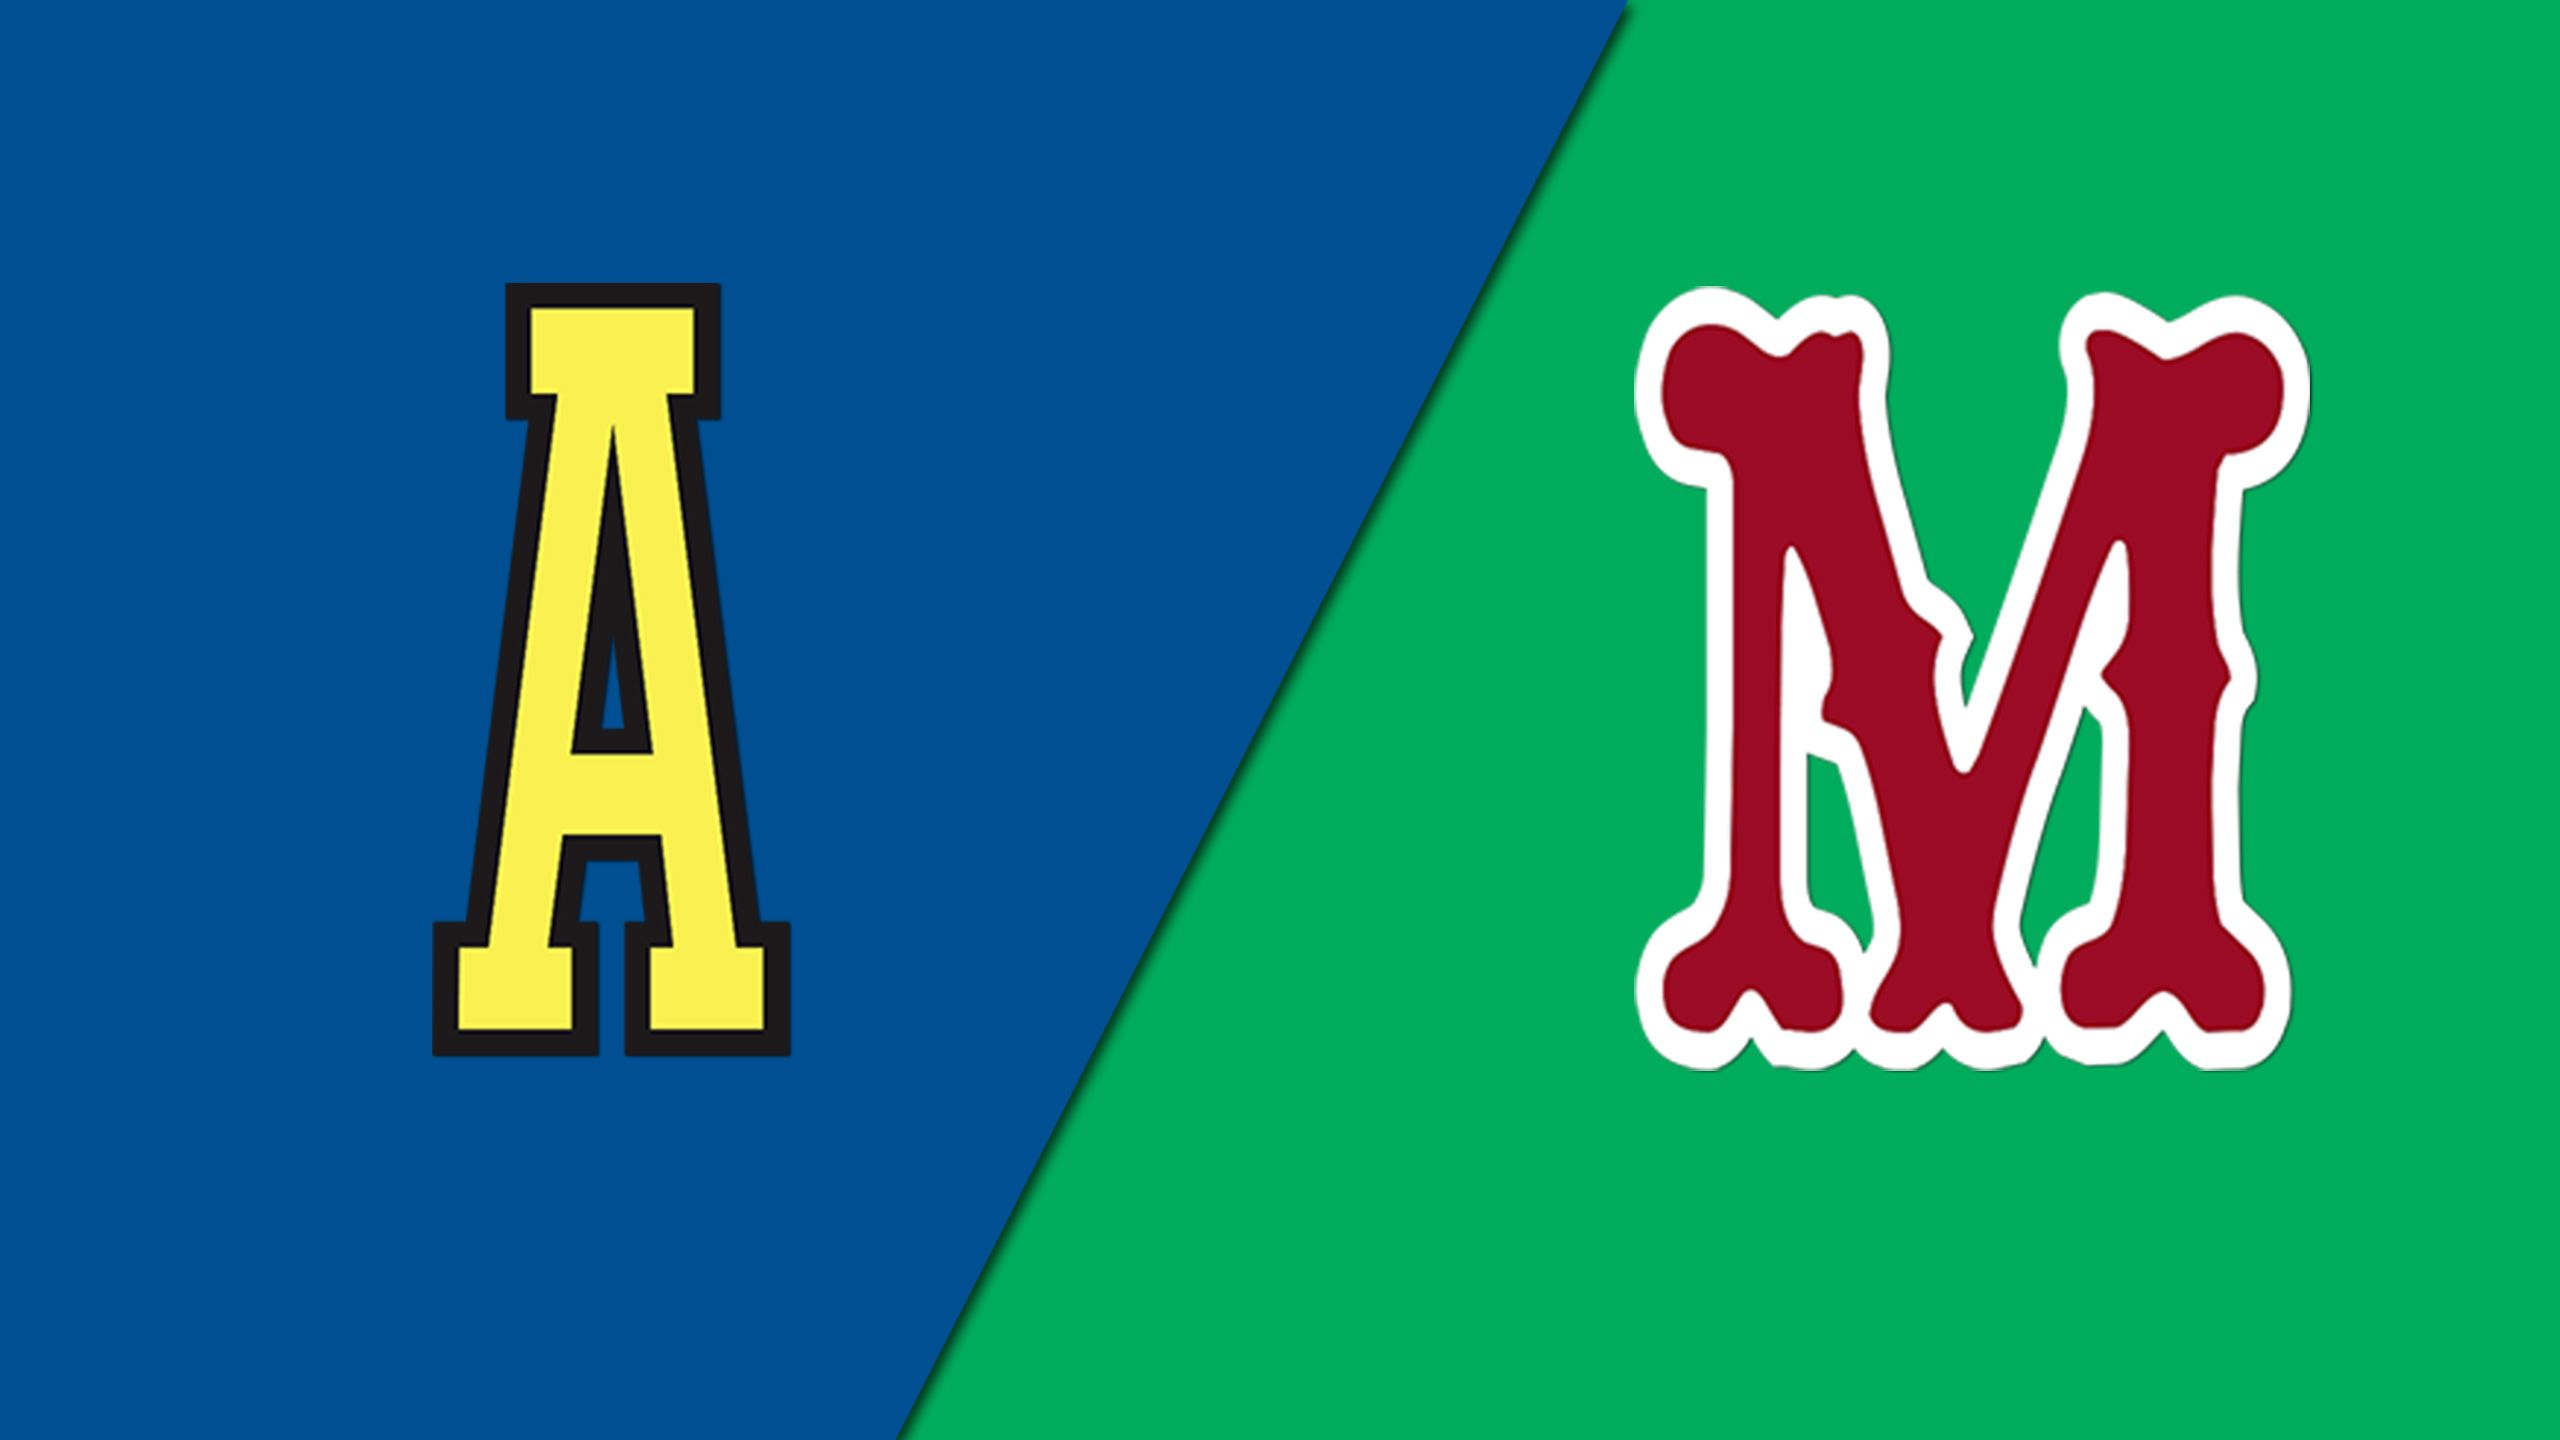 Queensland, Australia vs. Tamaulipas, Mexico (Little League World Series)